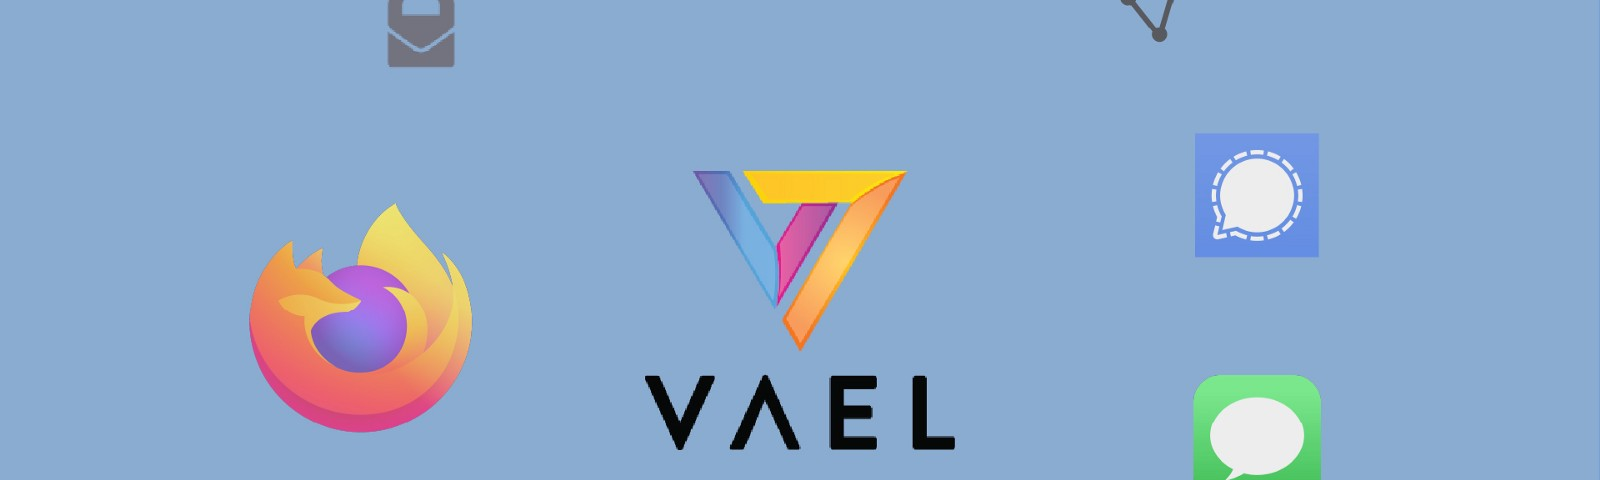 Vael, ethical.net, ProtonMail, ProtonVPN, Signal, iMessage, Tor, DuckDuckGo, and Firefox logos.